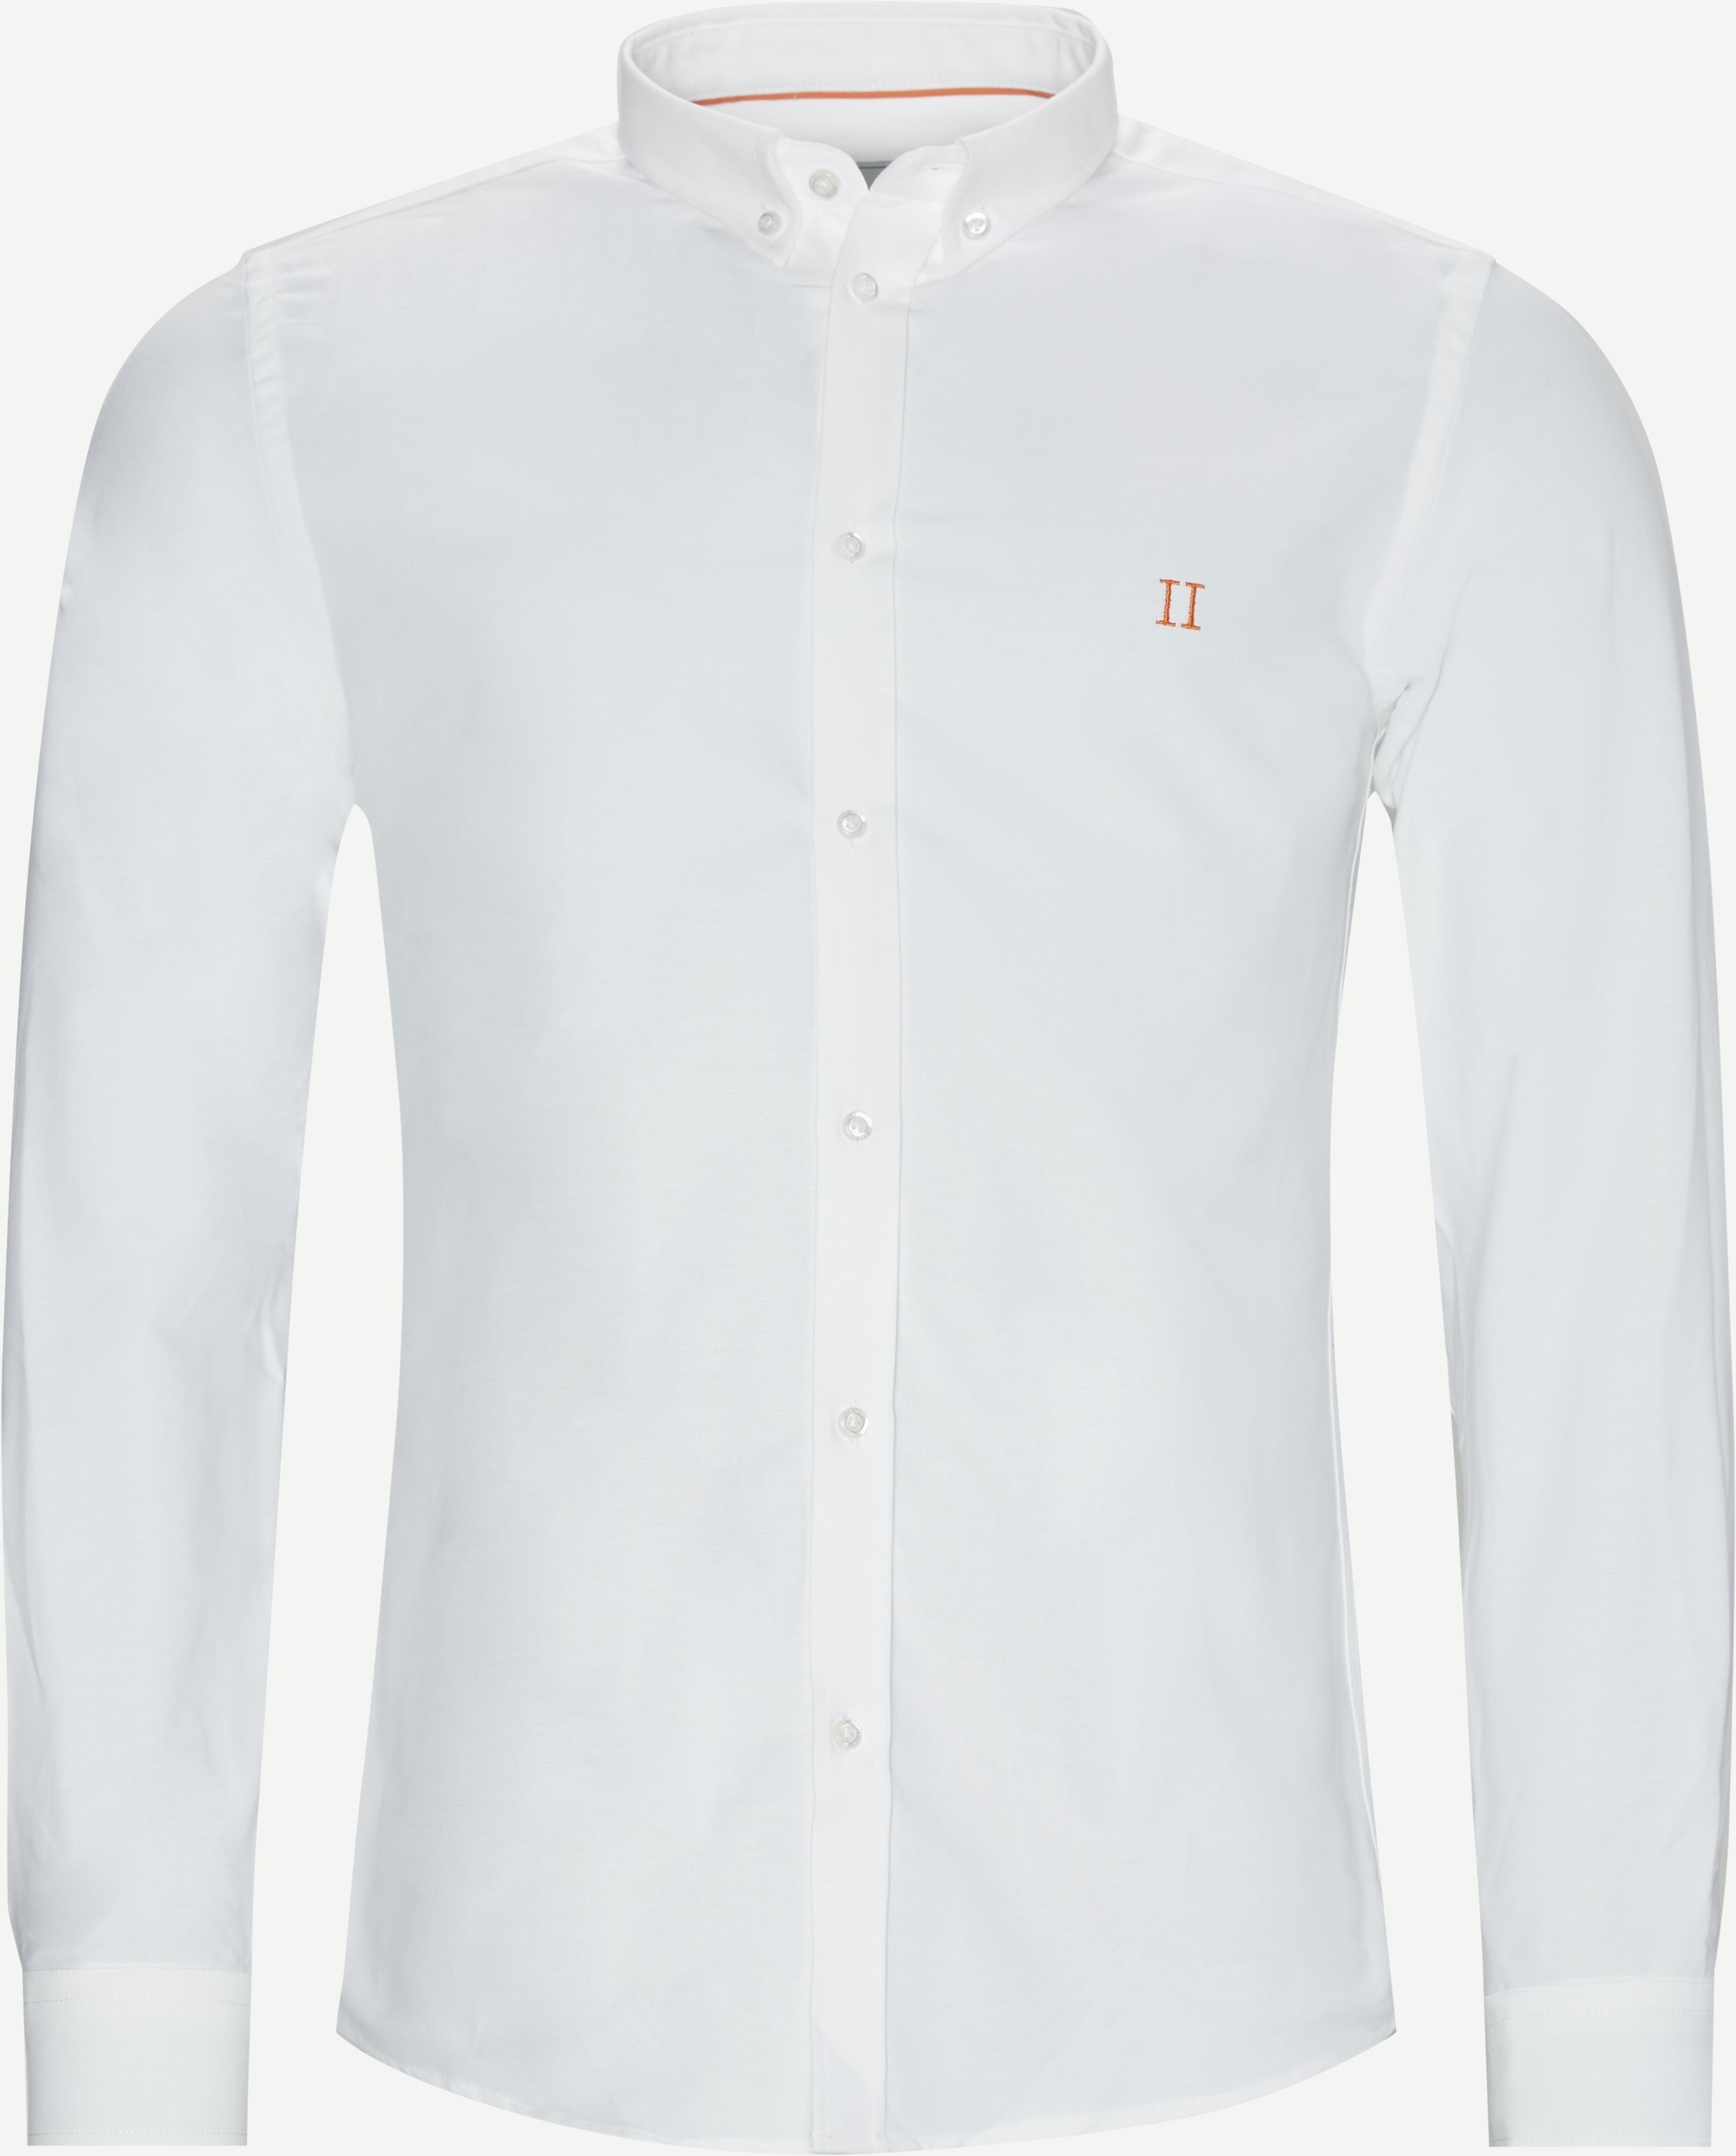 Oliver Oxford Shirt - Shirts - Slim fit - White